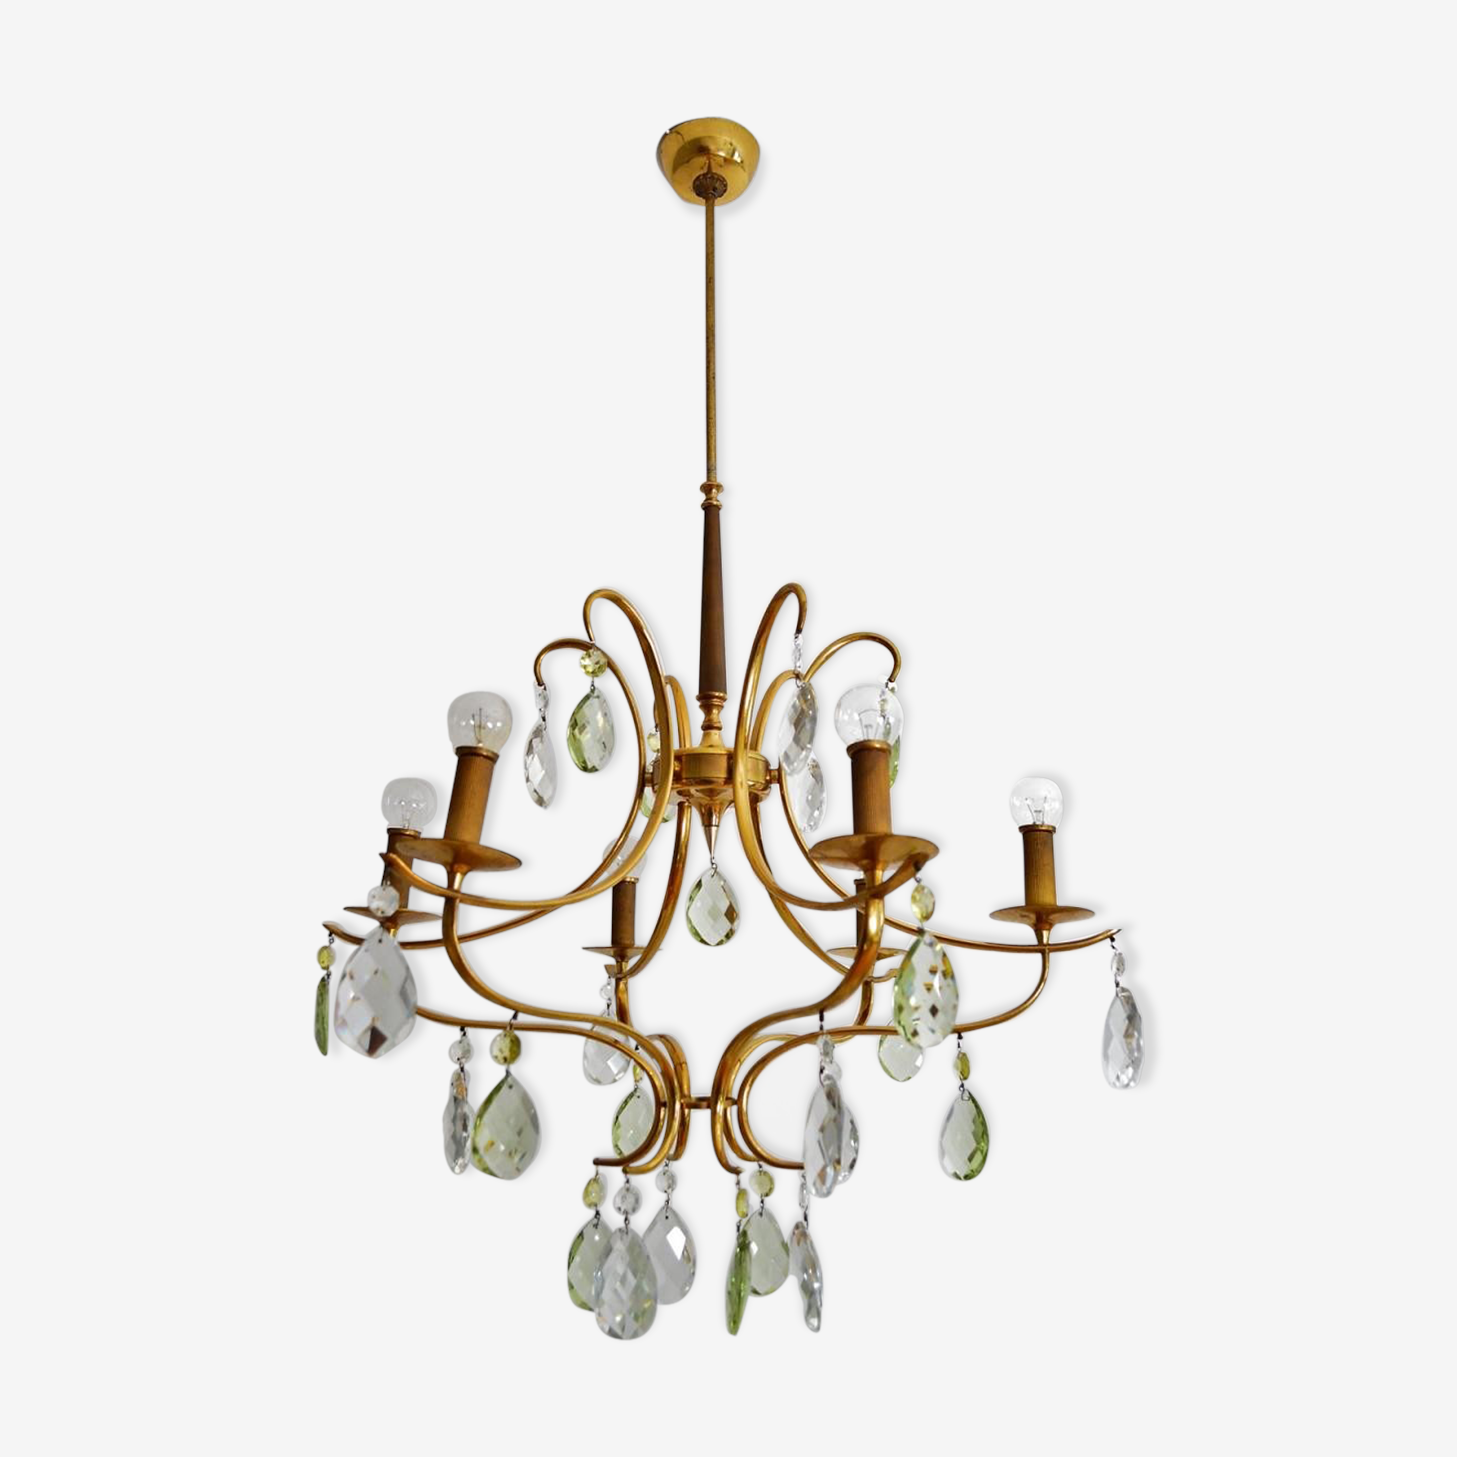 Crystal chandelier with drops in green Murano glass 1950 s